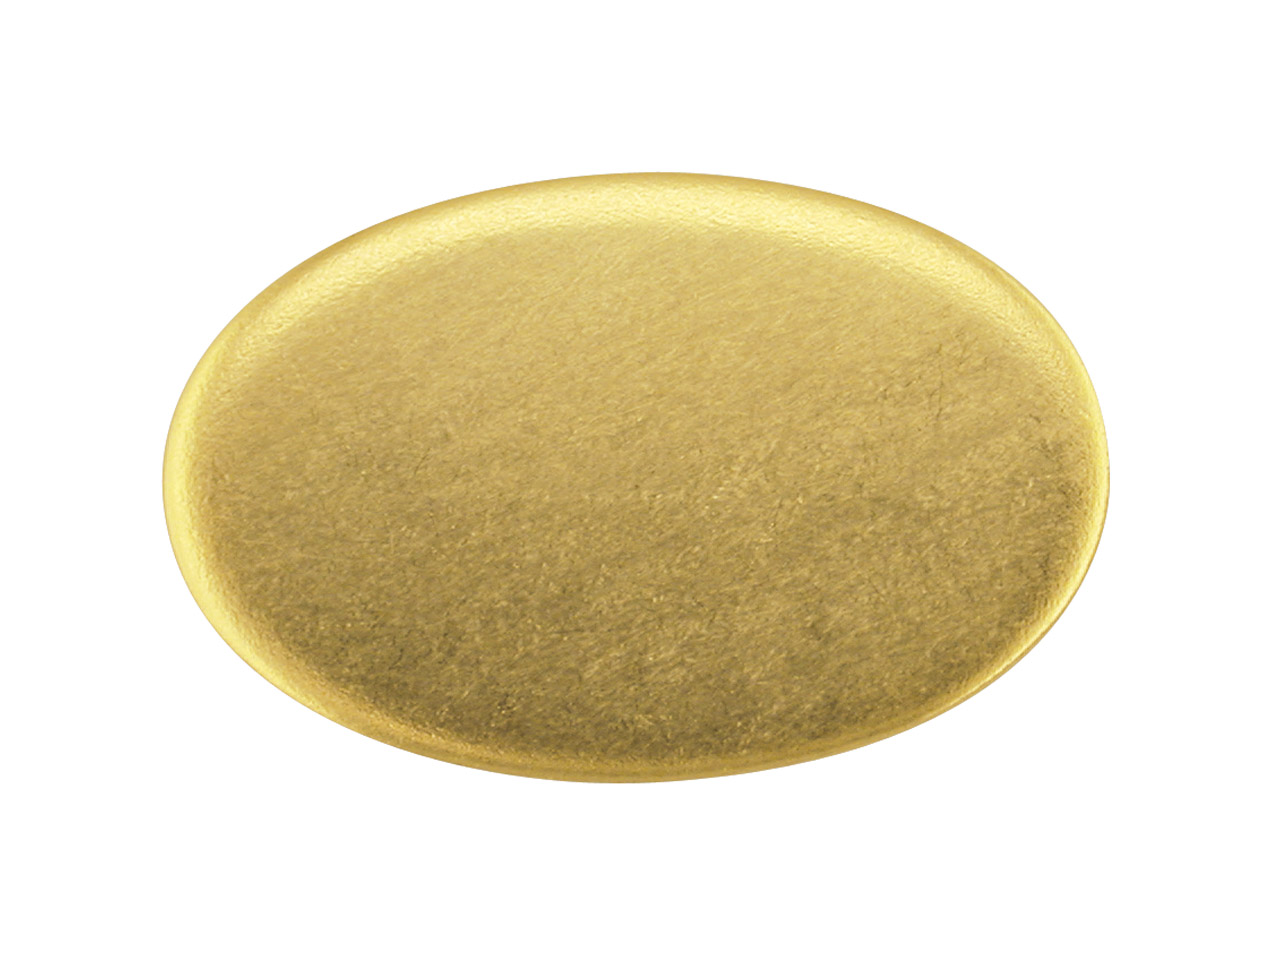 9ct Yellow DF Blank Kc8208 1.00mm   Fully Annealed, Oval 19mm X 12.5mm, 100% Recycled Gold